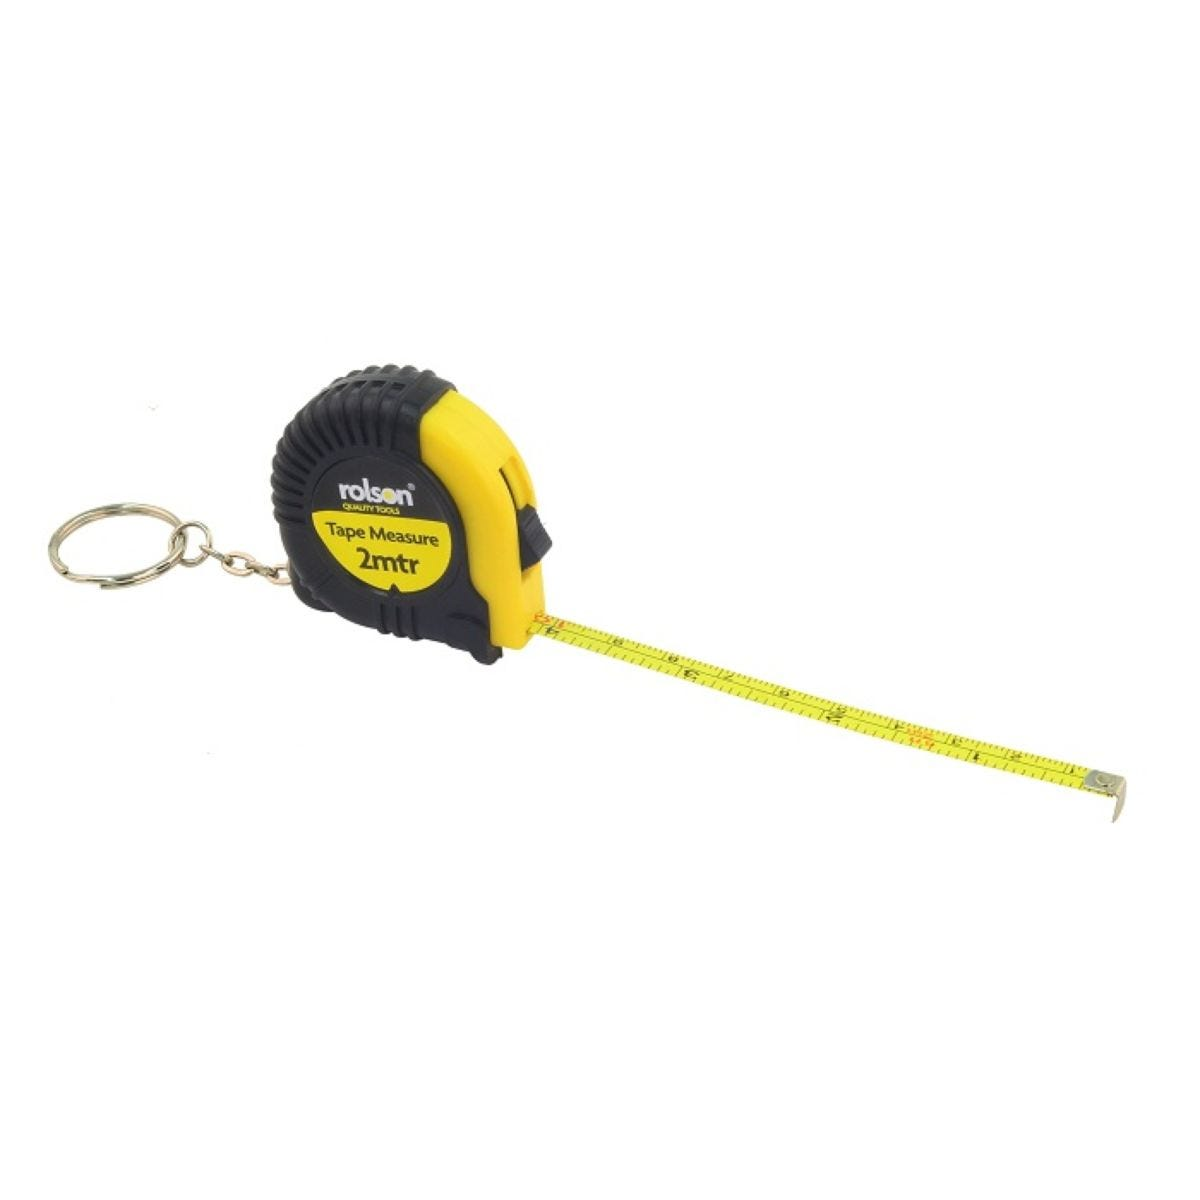 Rolson 2m Tape Measure With Keyring